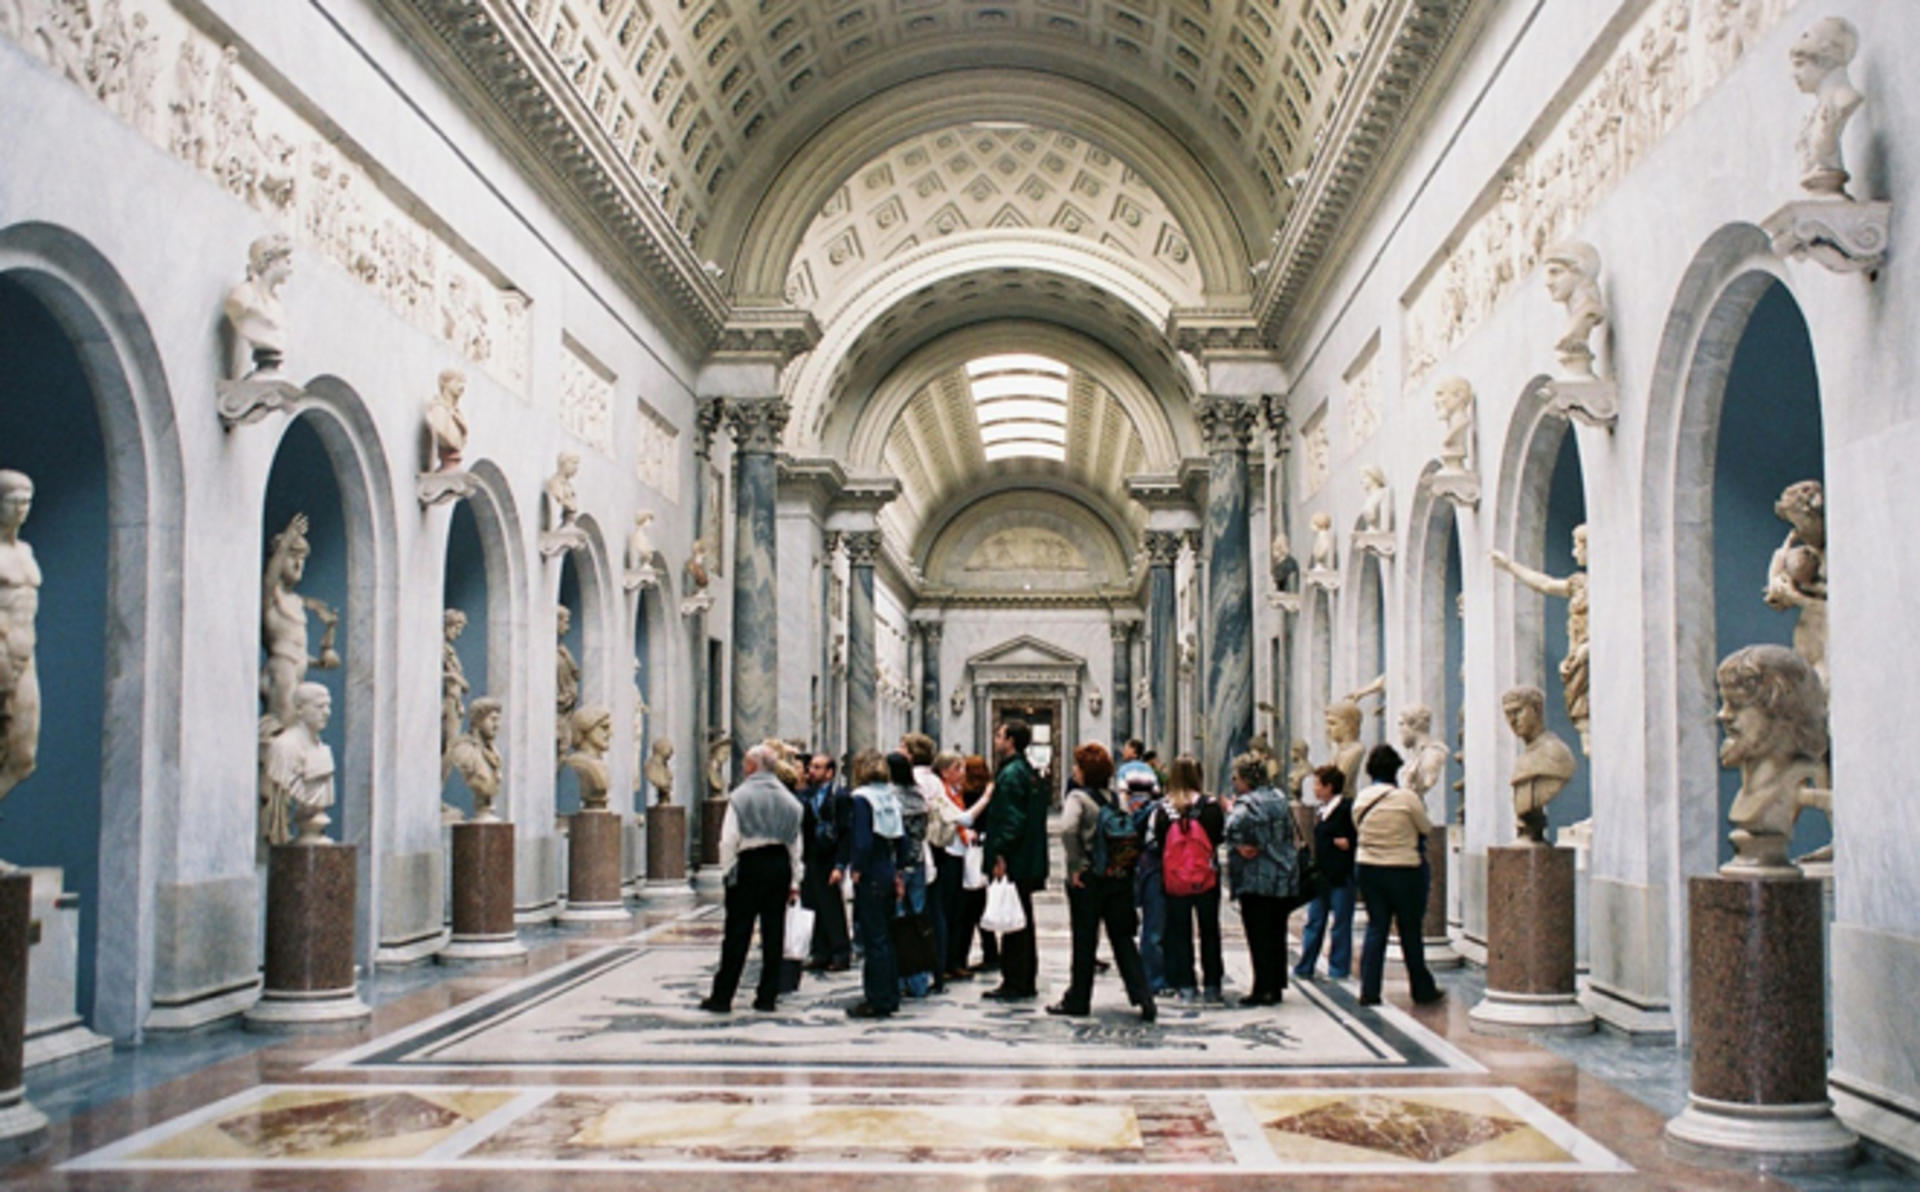 Lungarno_Exclusive-Voucher-for-the-Famous-Vatican-Museum